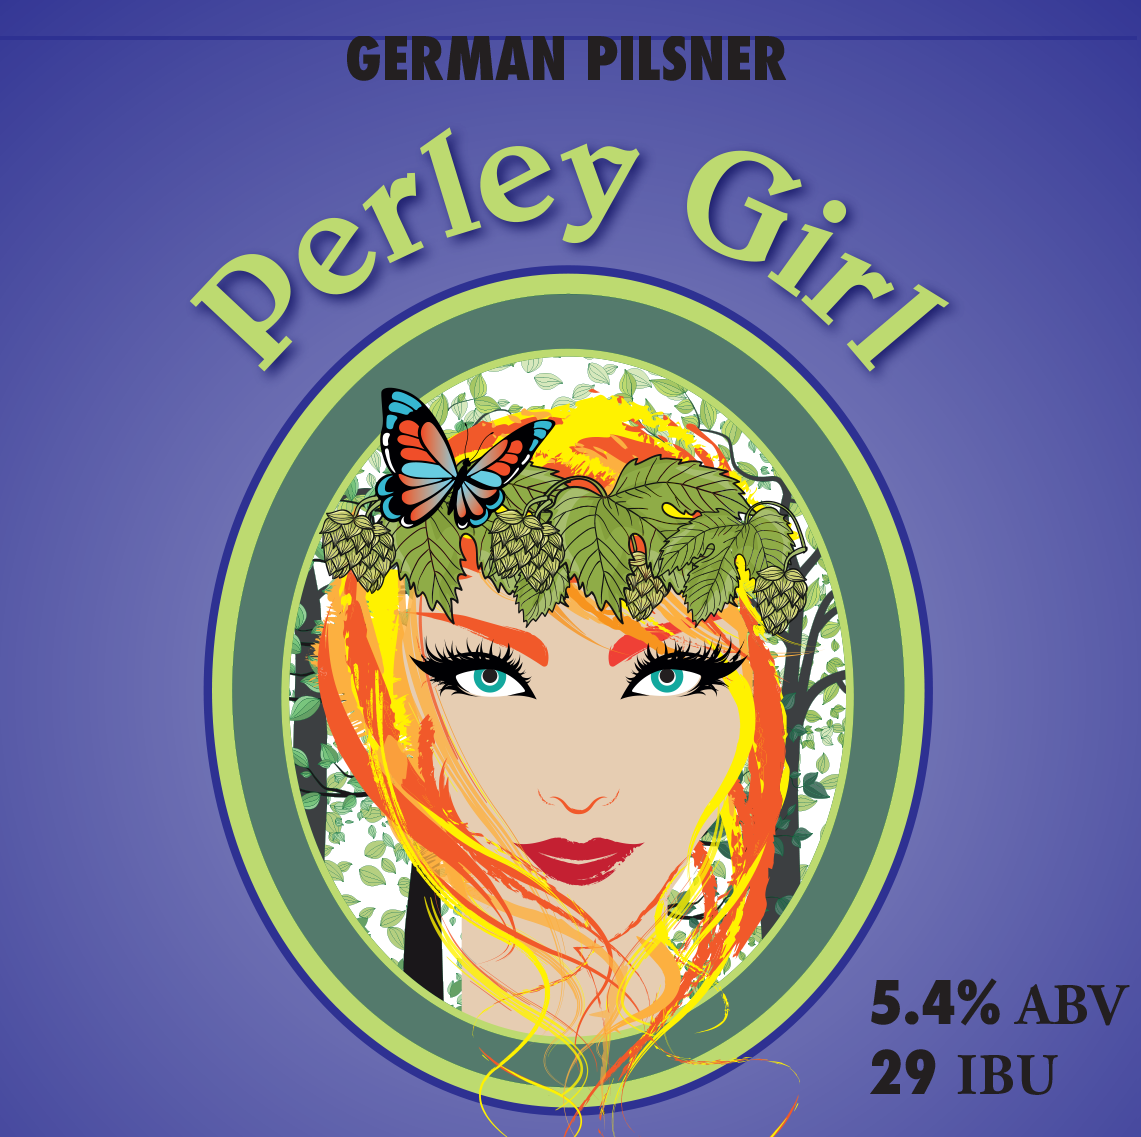 Perley Girl German Pilsner